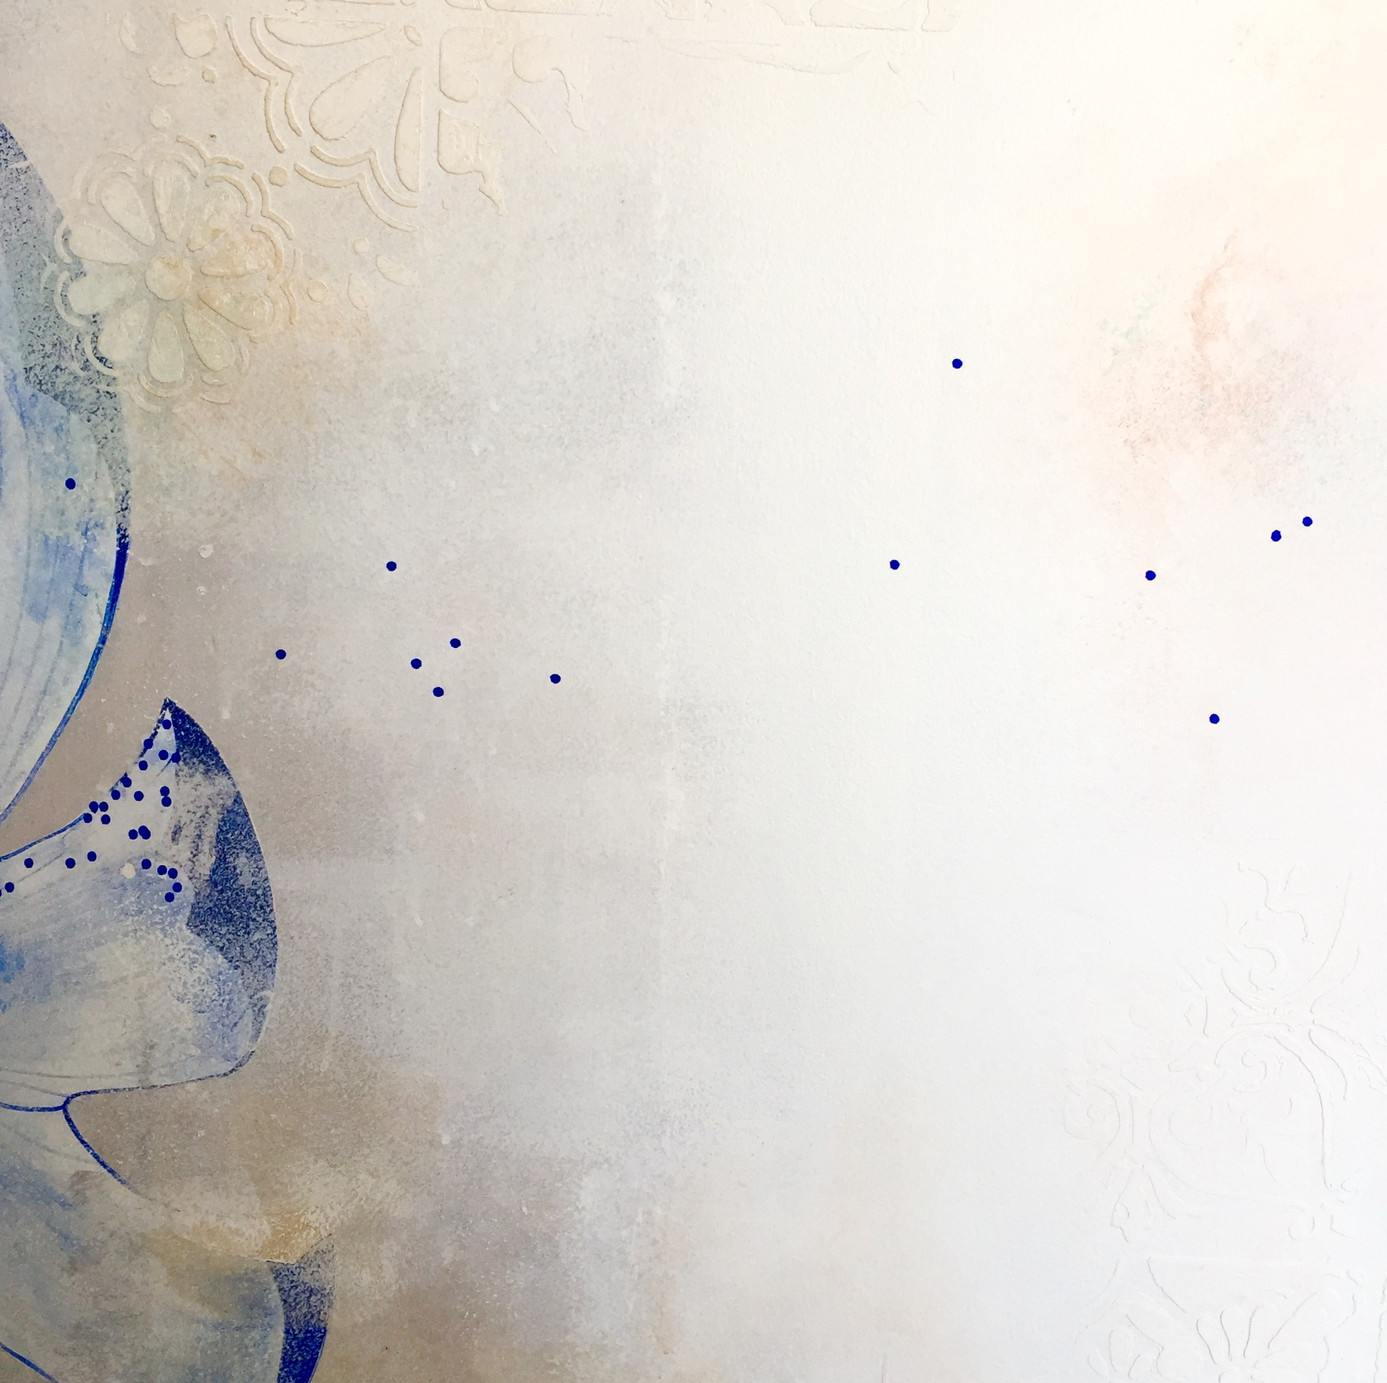 Figurative abstract mural